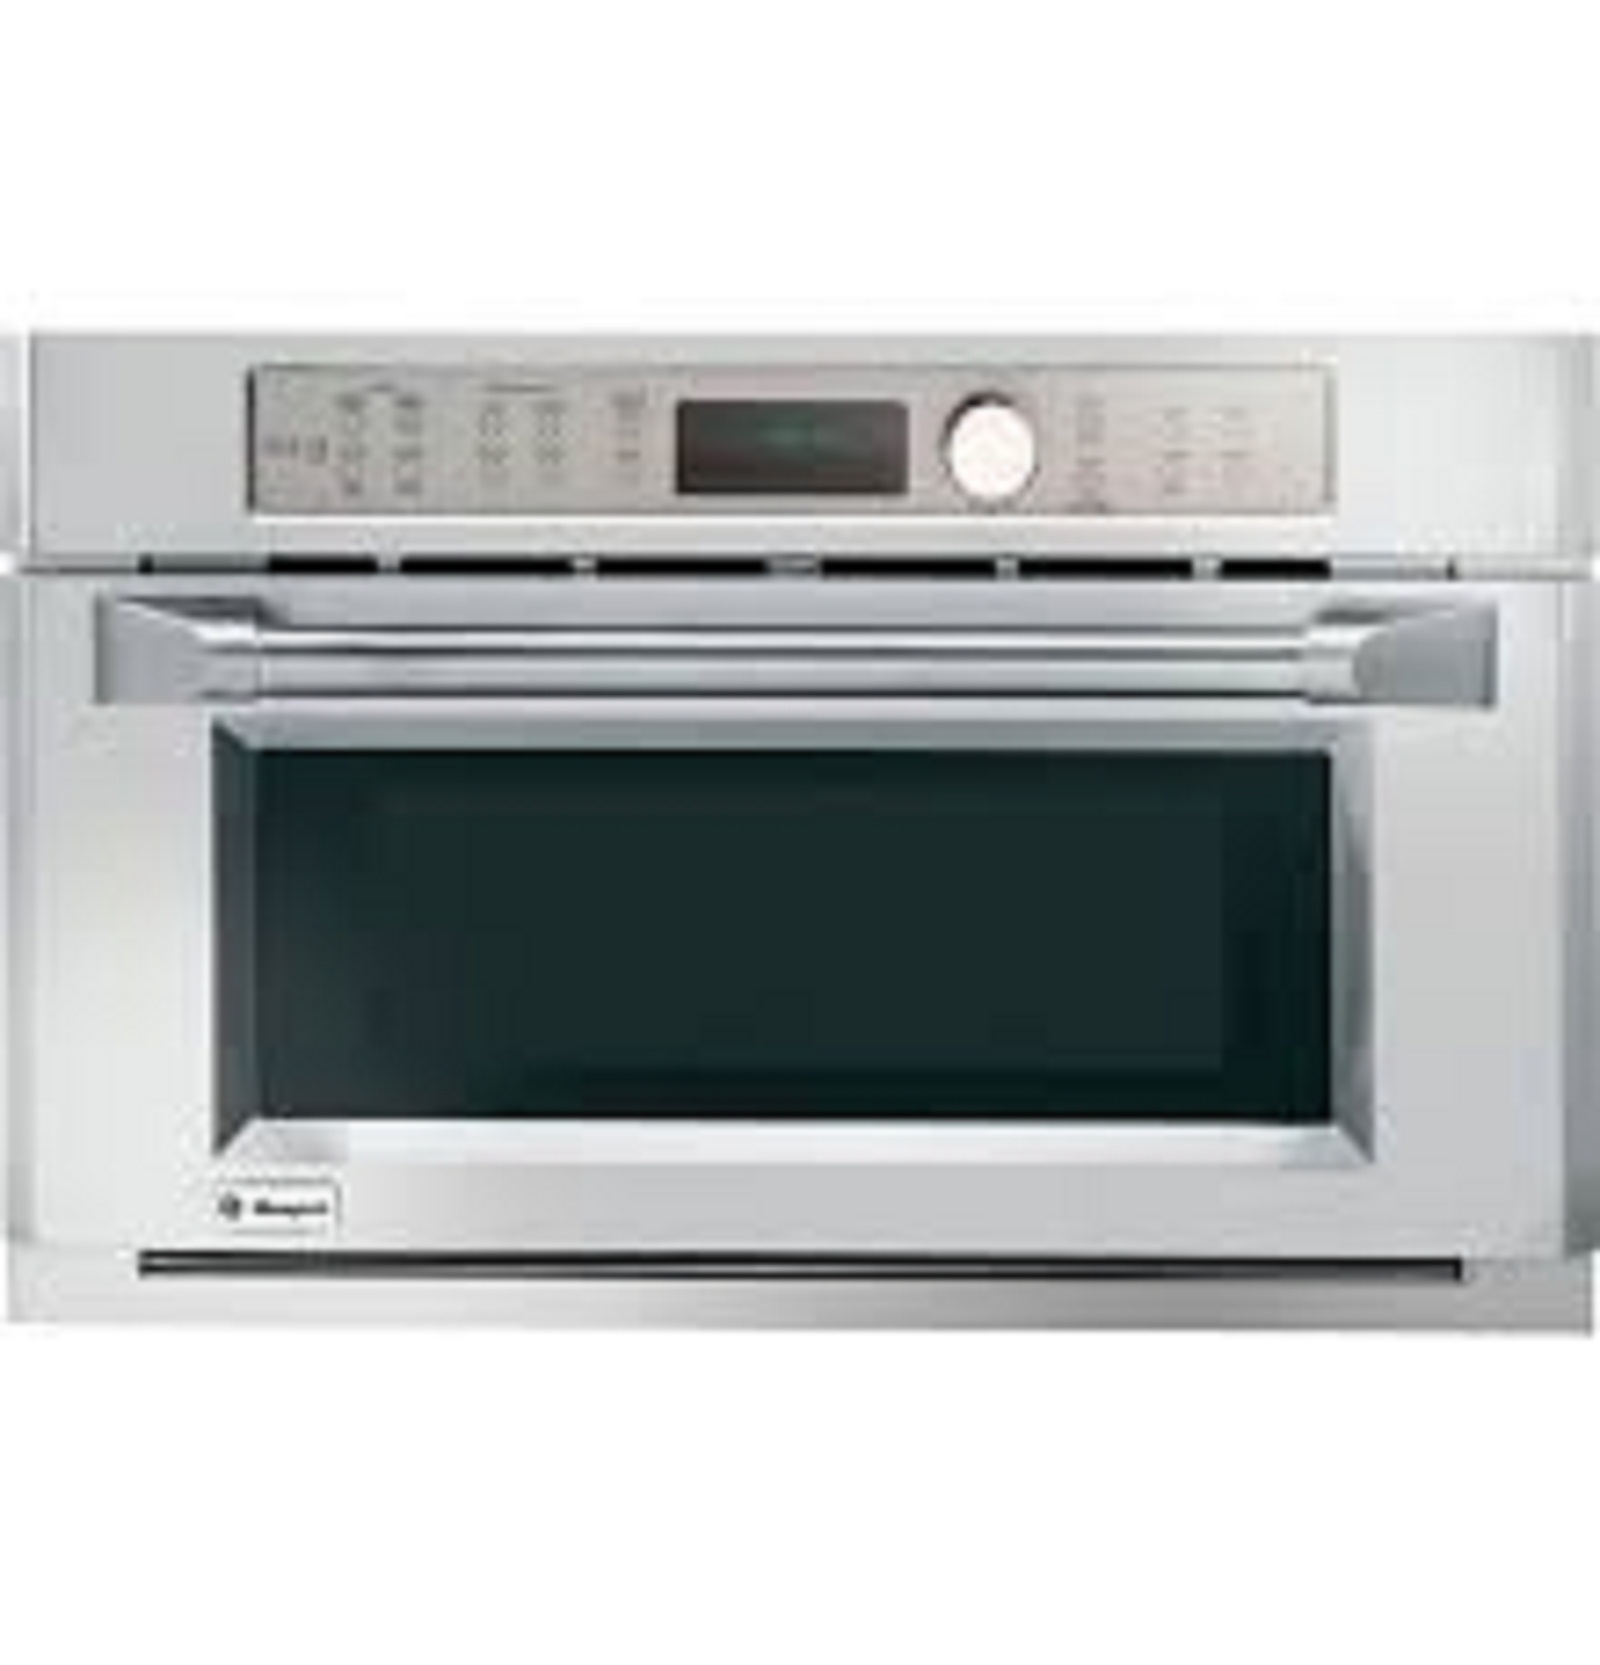 Monogram Built-In Electric Oven with Advantium® Speedcook Technology- 120V